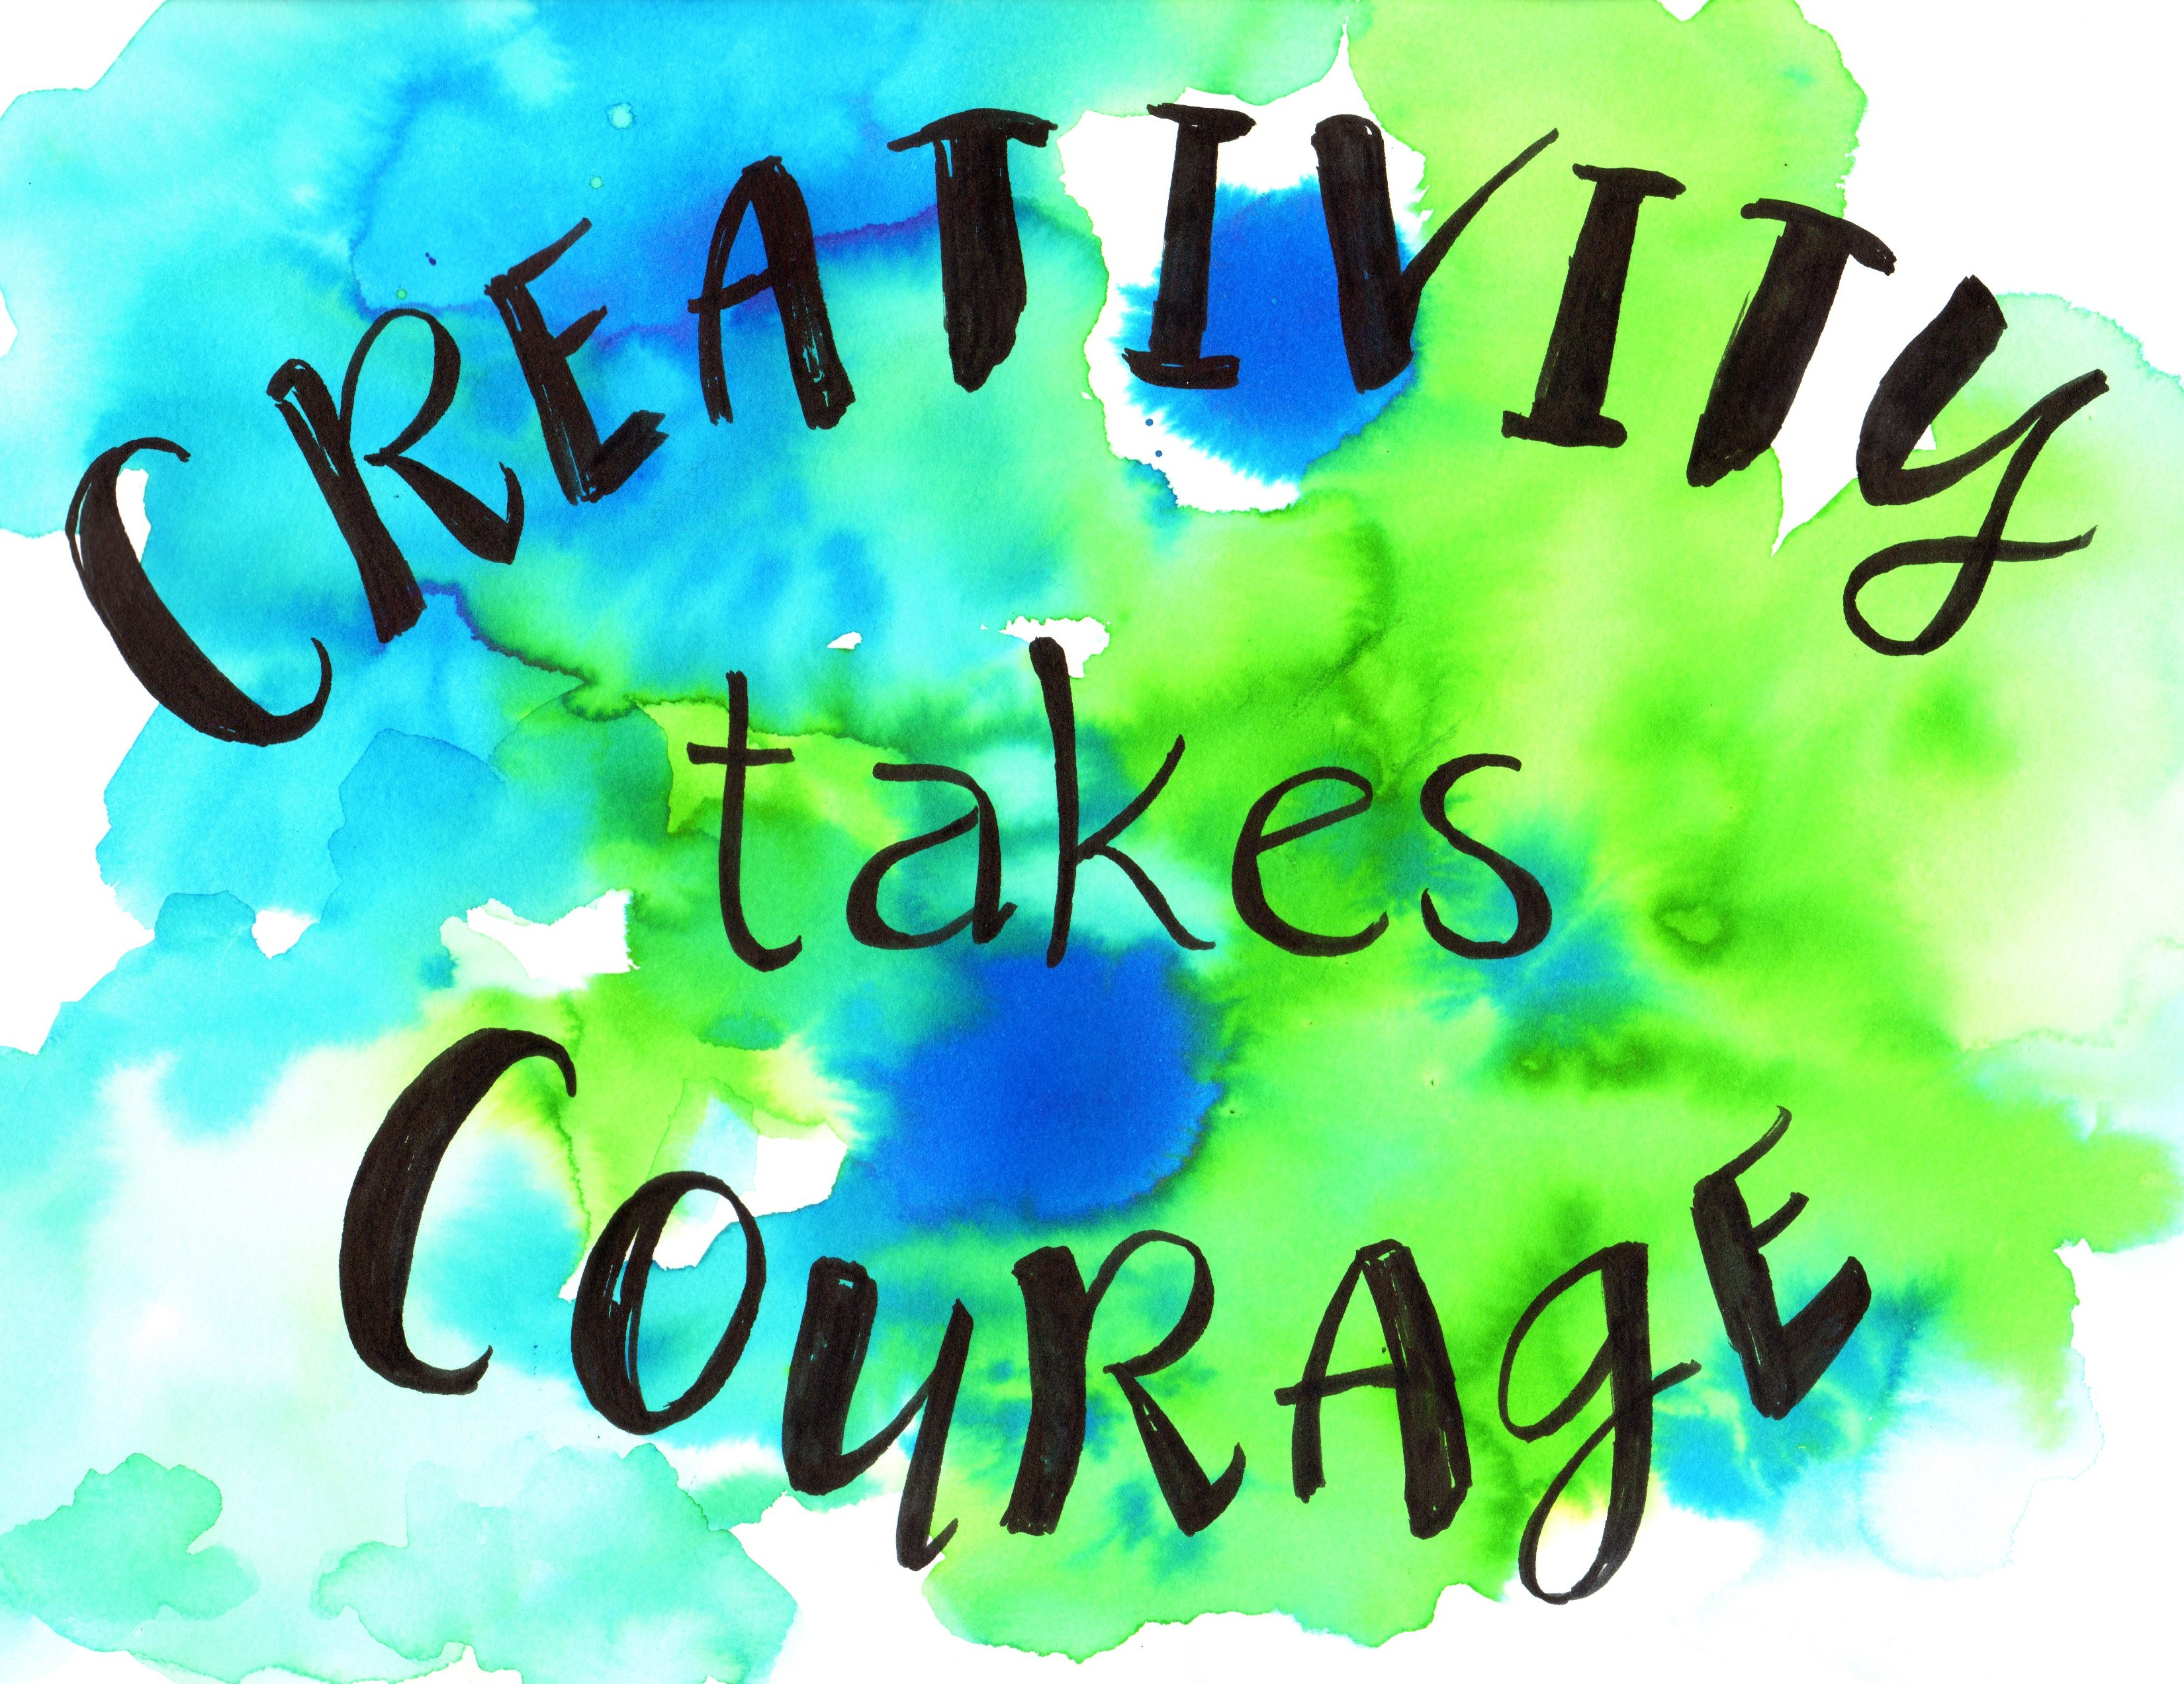 creative courage Could someone please give me an example and definition of creative courage and physical courage thanks.